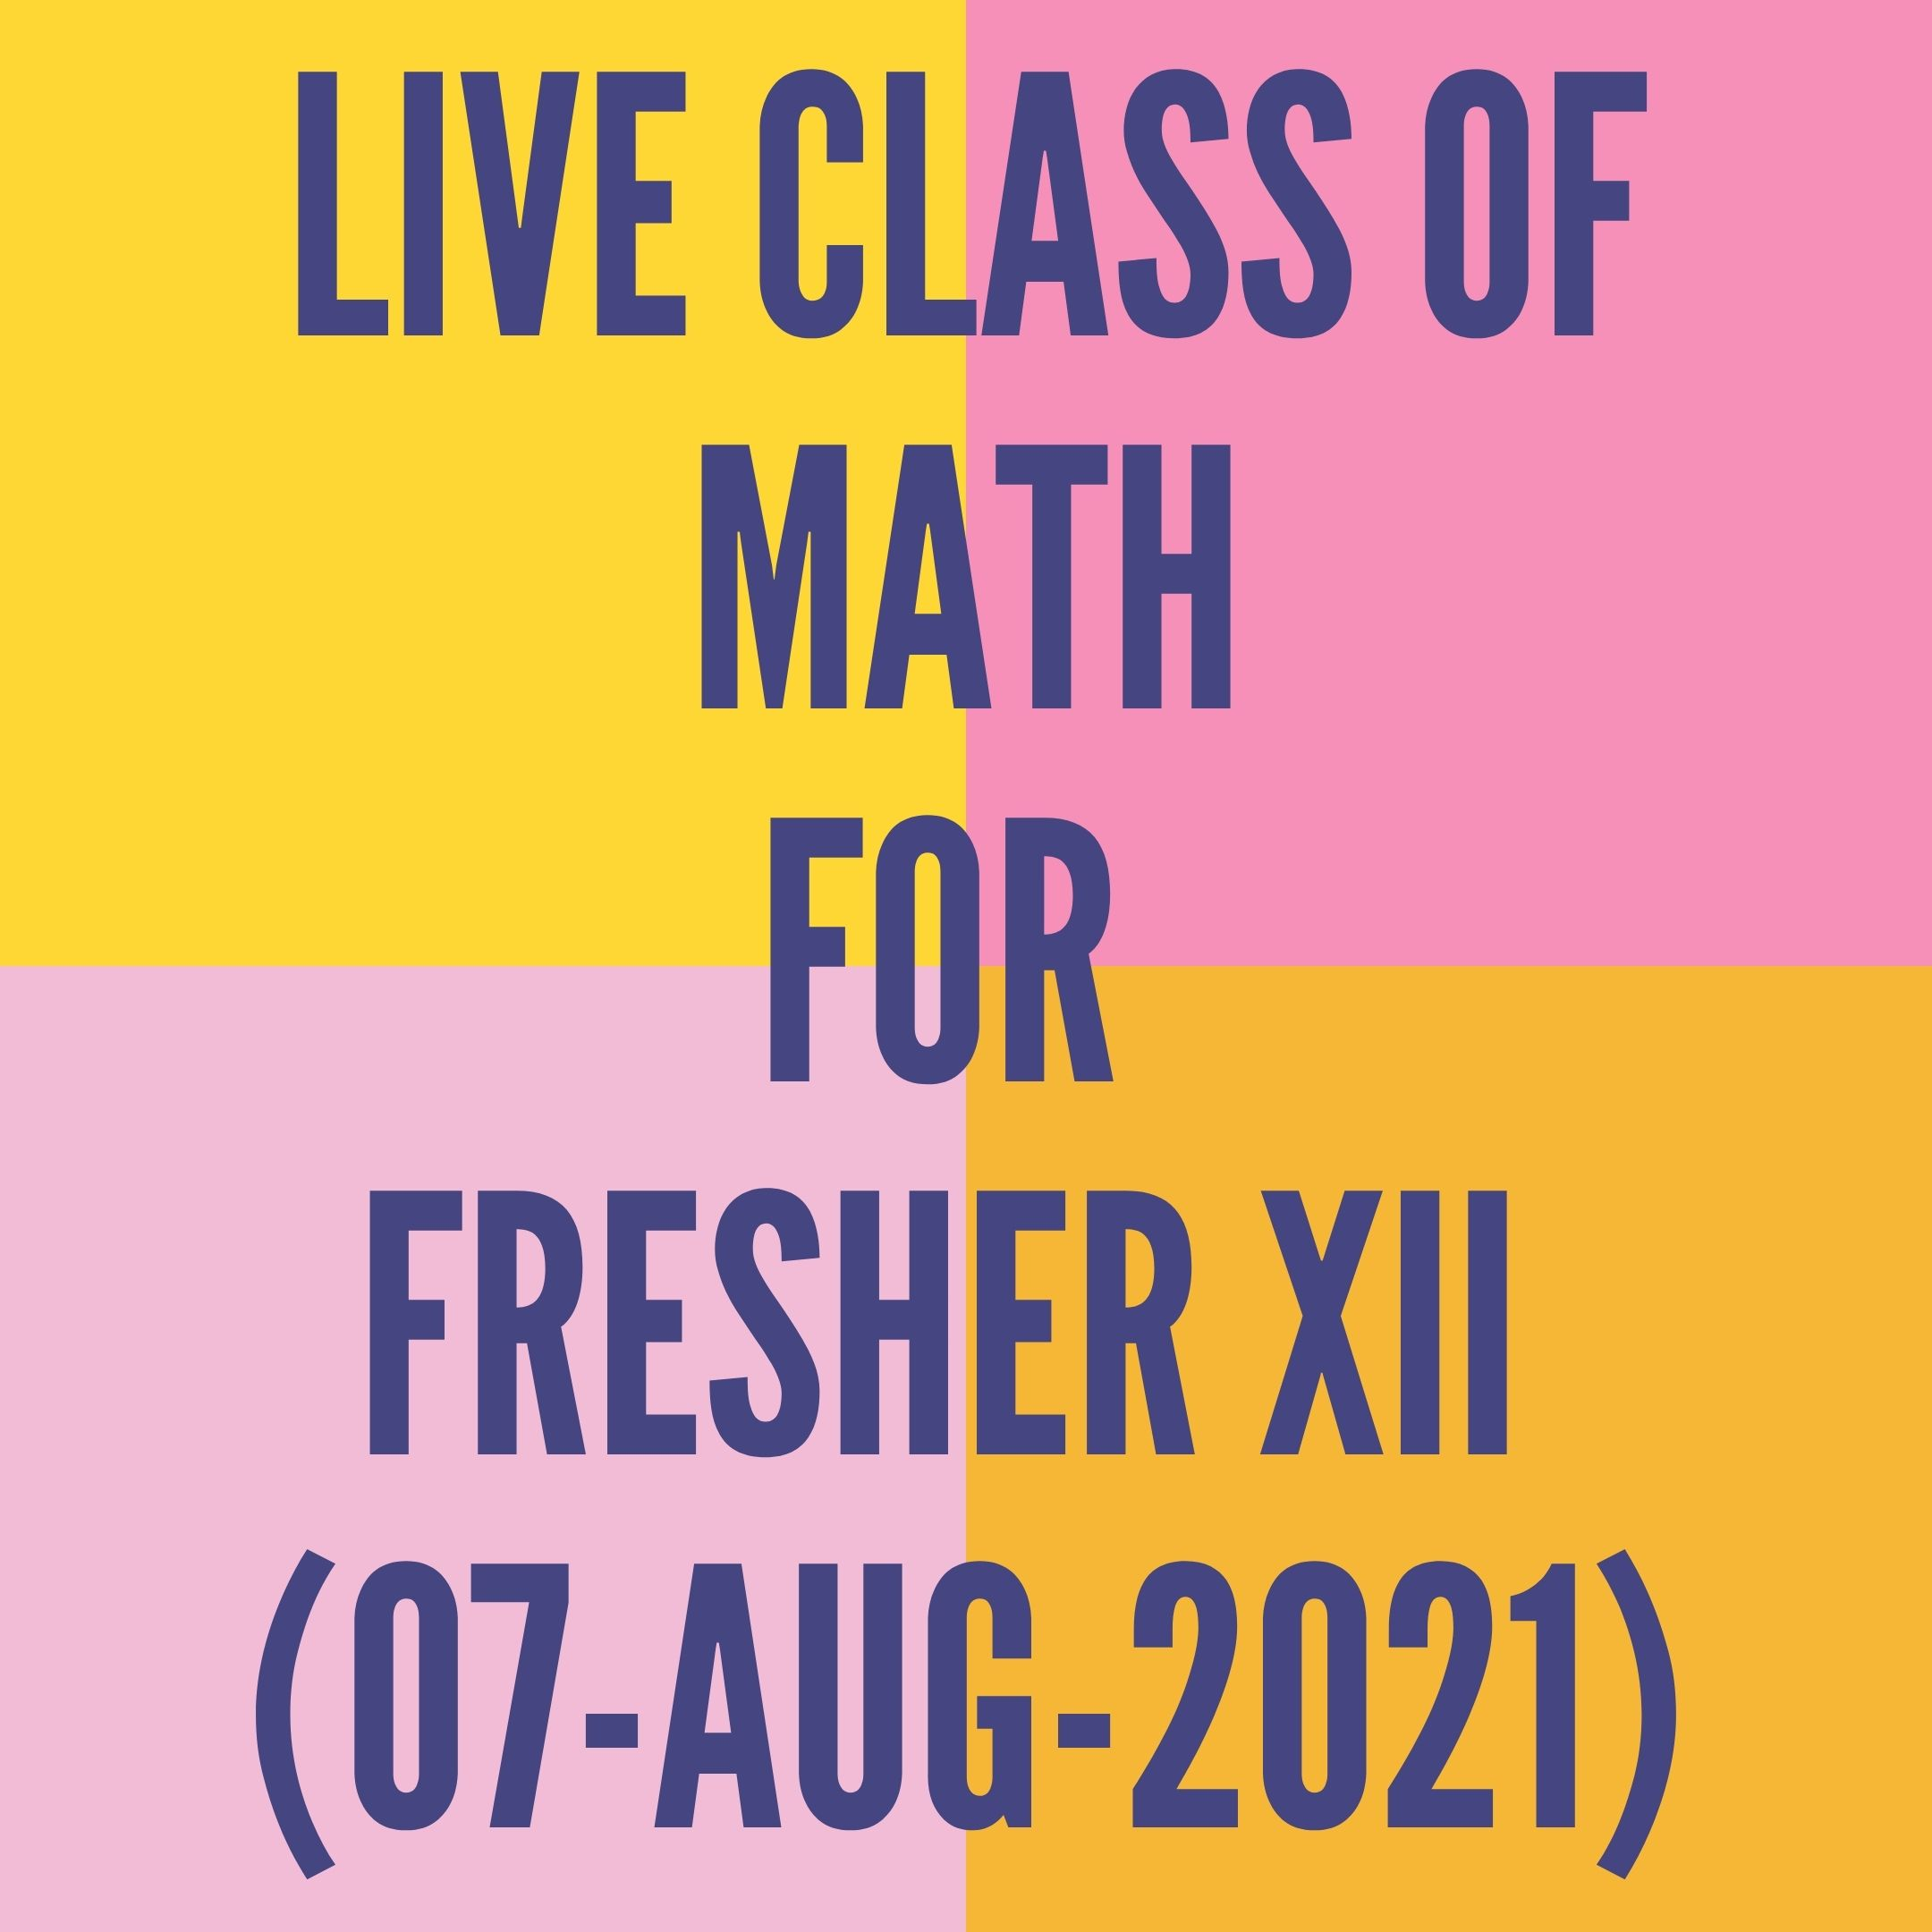 LIVE CLASS OF MATH FOR FRESHER (07-AUG-2021)